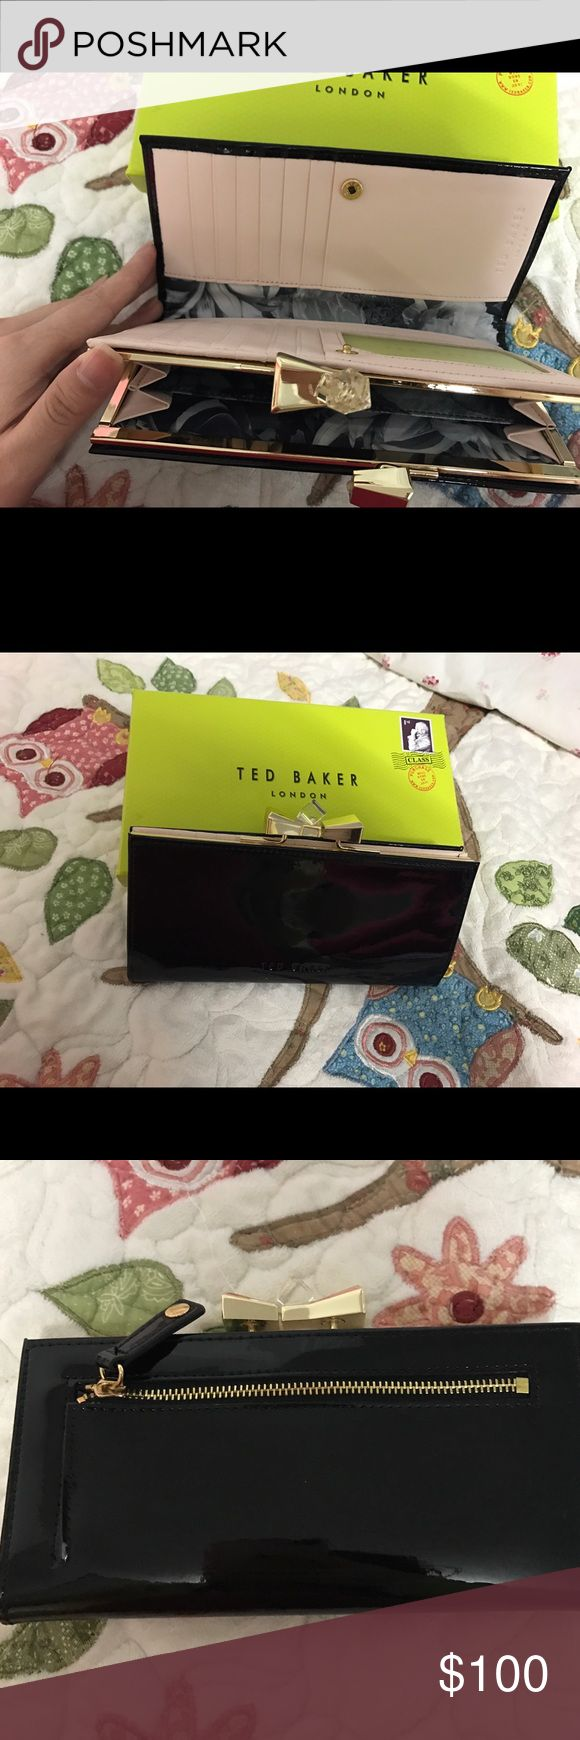 Ted Baker Wallet I have been used it twice for wedding only. Still good condition! Baker by Ted Baker Bags Wallets